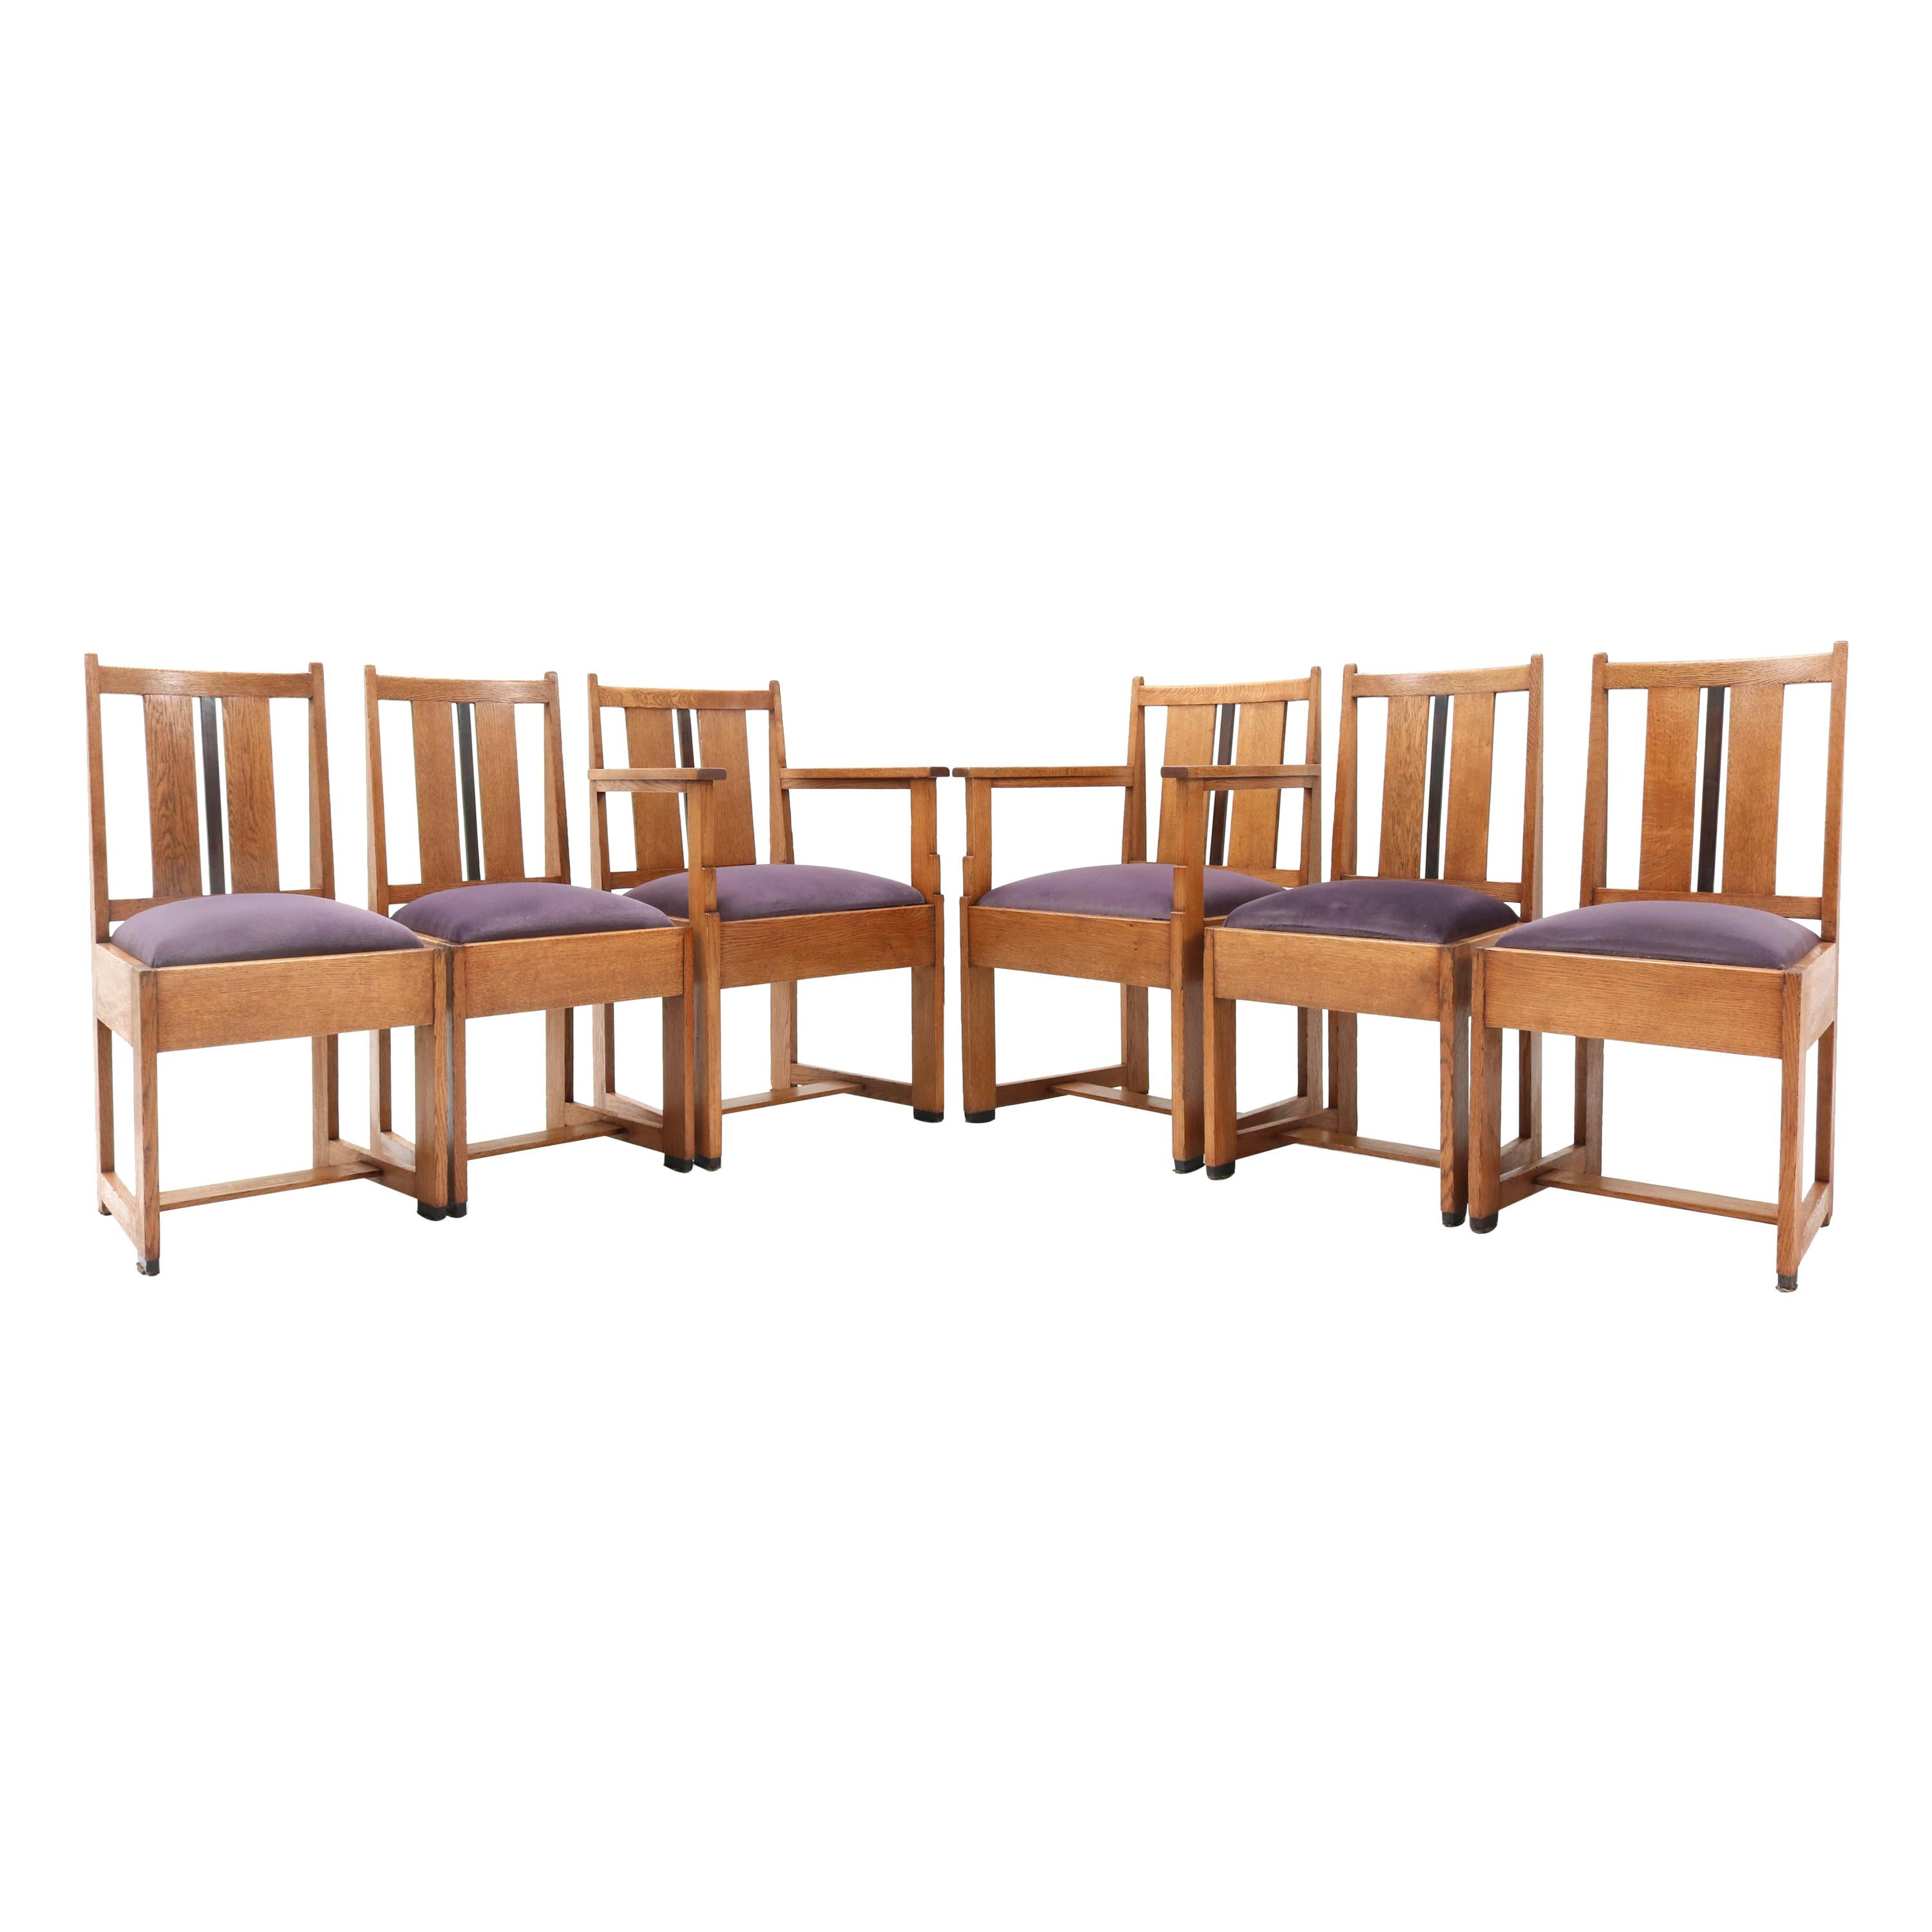 Six Oak Art Deco Haagse School Dining Room Chairs, 1920s